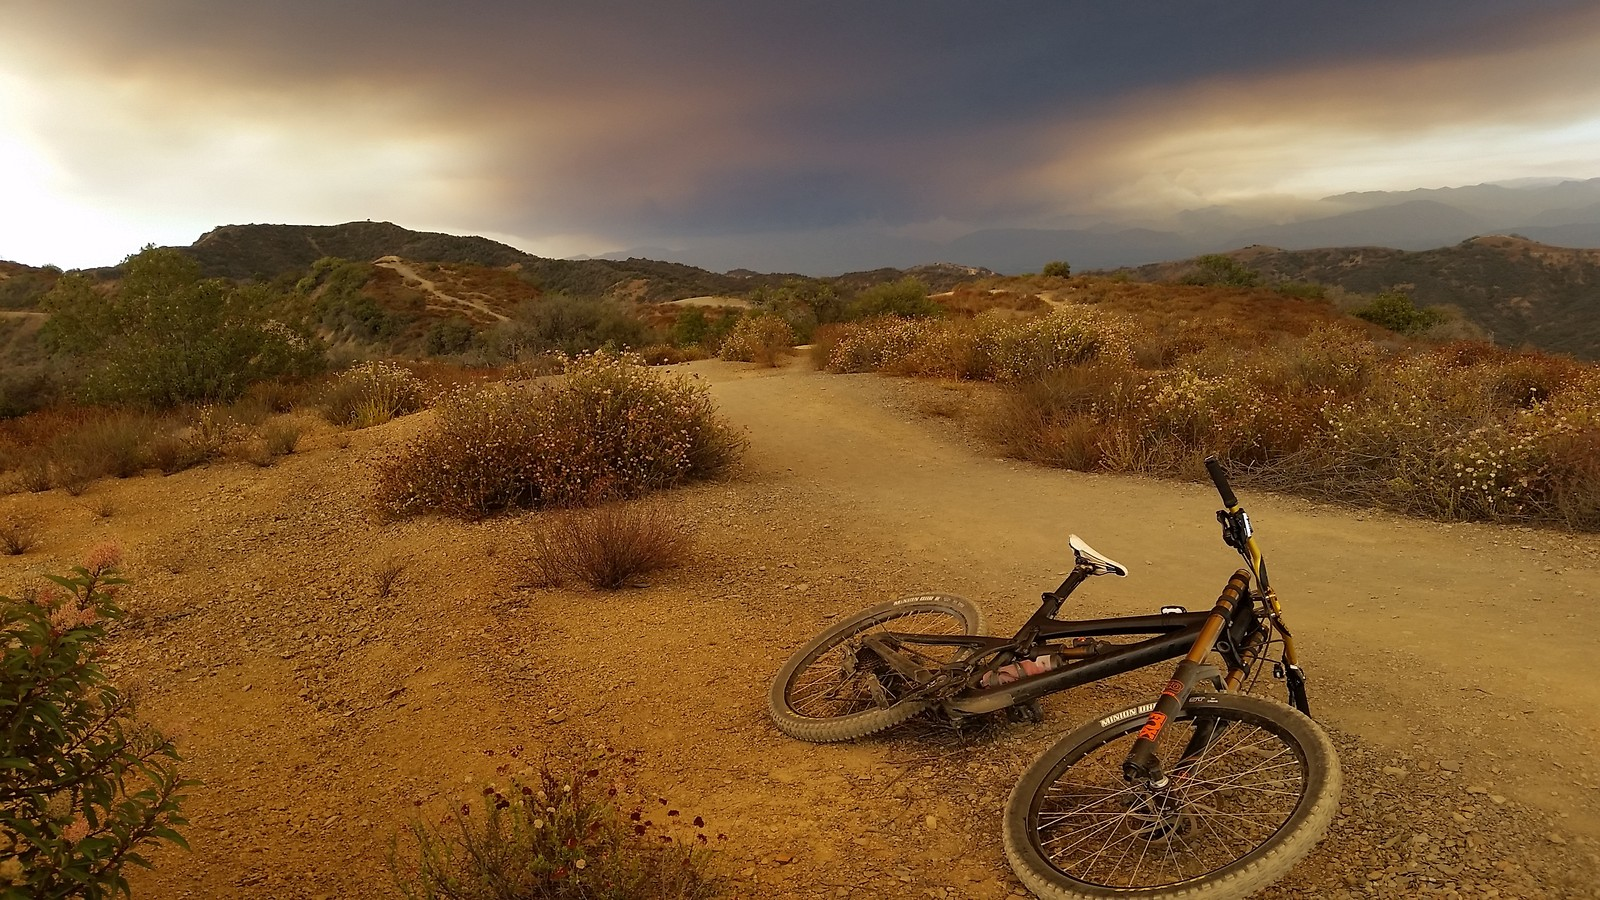 Sand Fire - Joe Moto - Mountain Biking Pictures - Vital MTB